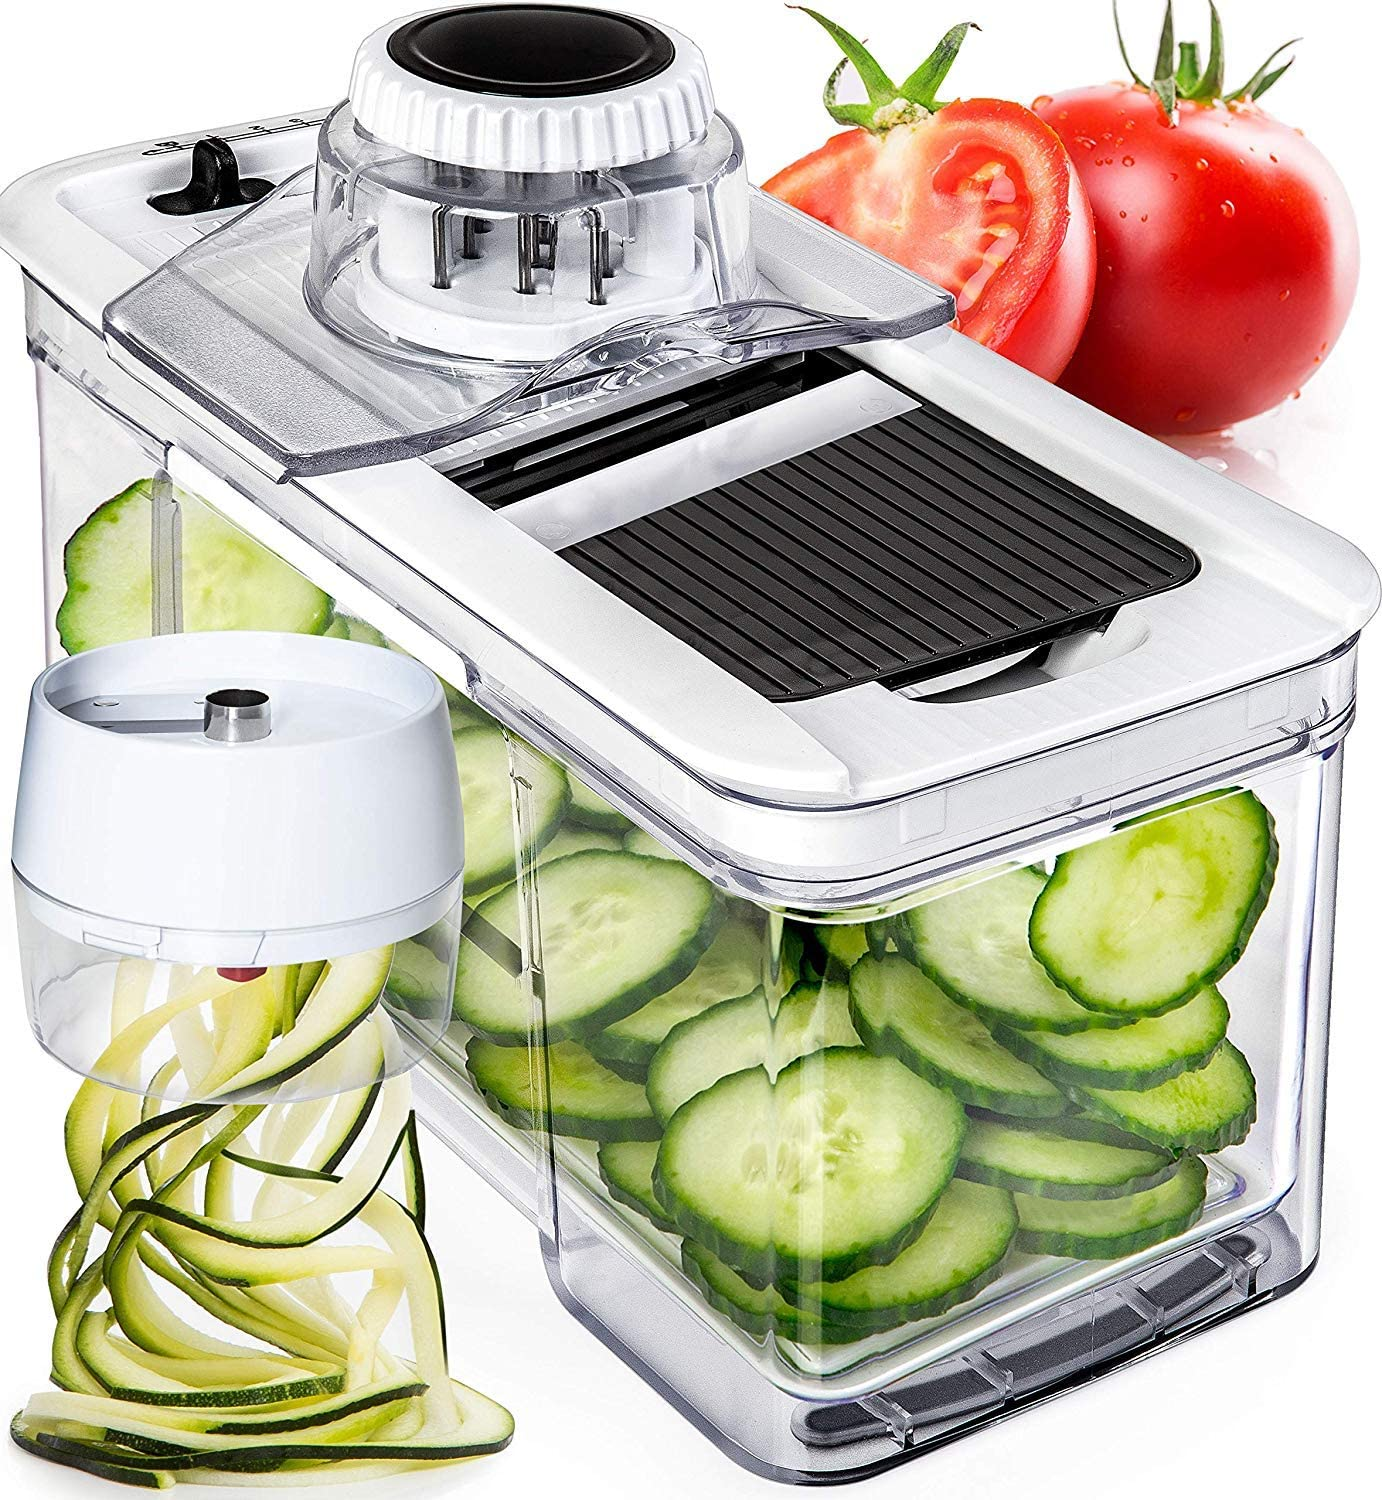 Consumer Reports Best Mandoline Slicer Reviews